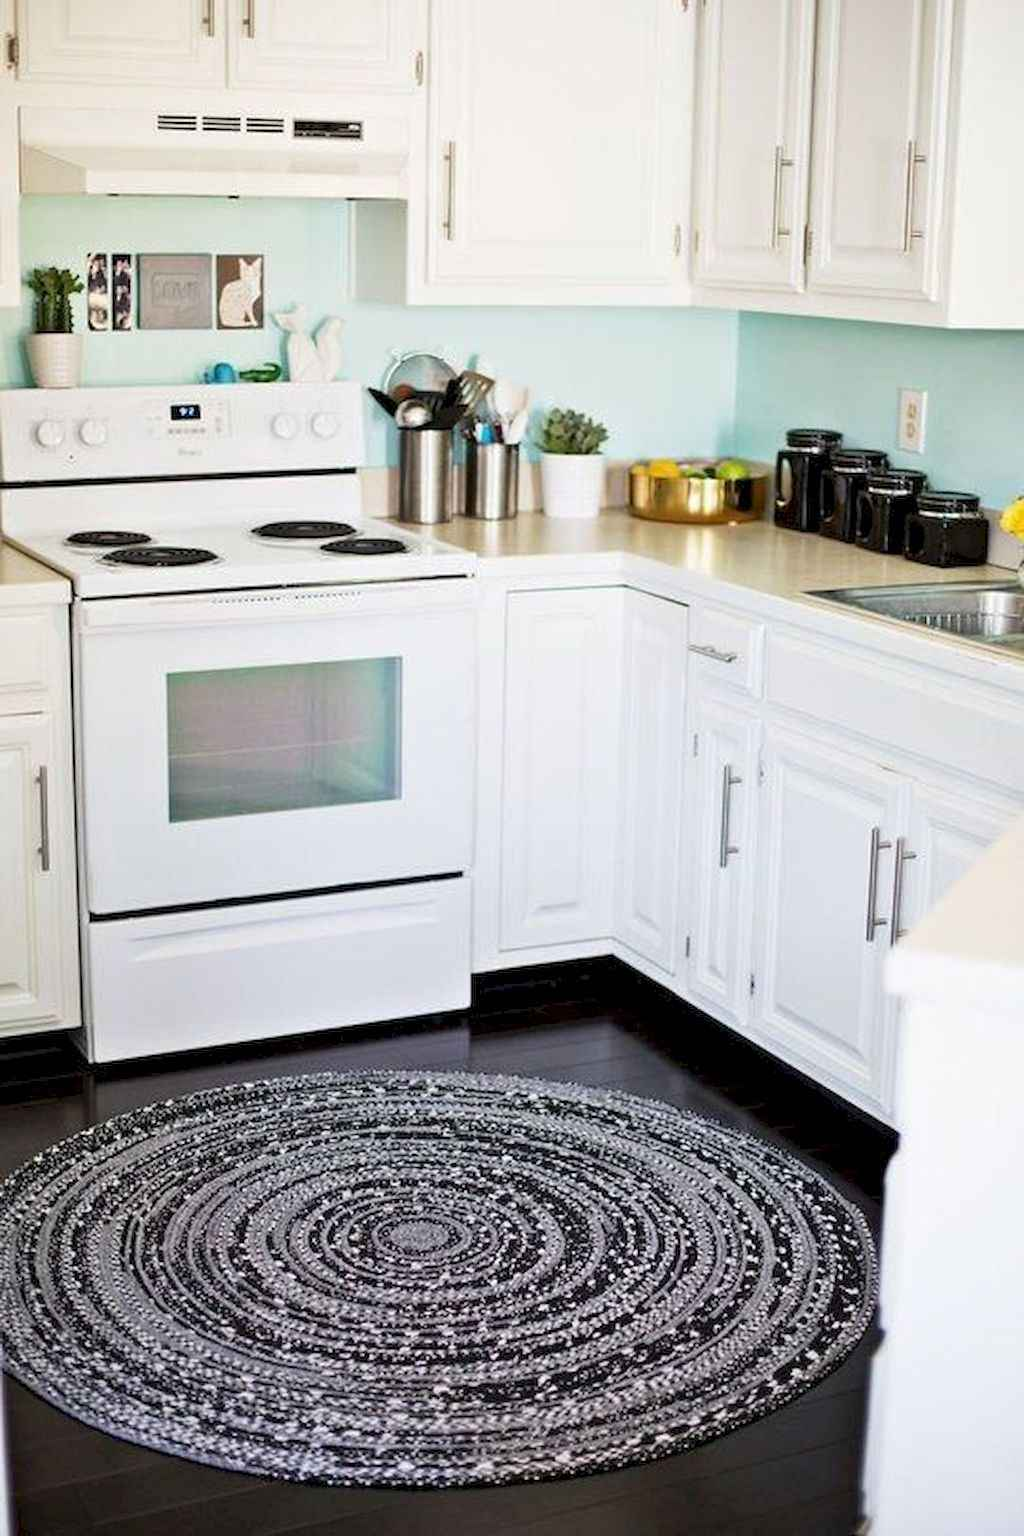 Clever college apartment decorating ideas on a budget (4)